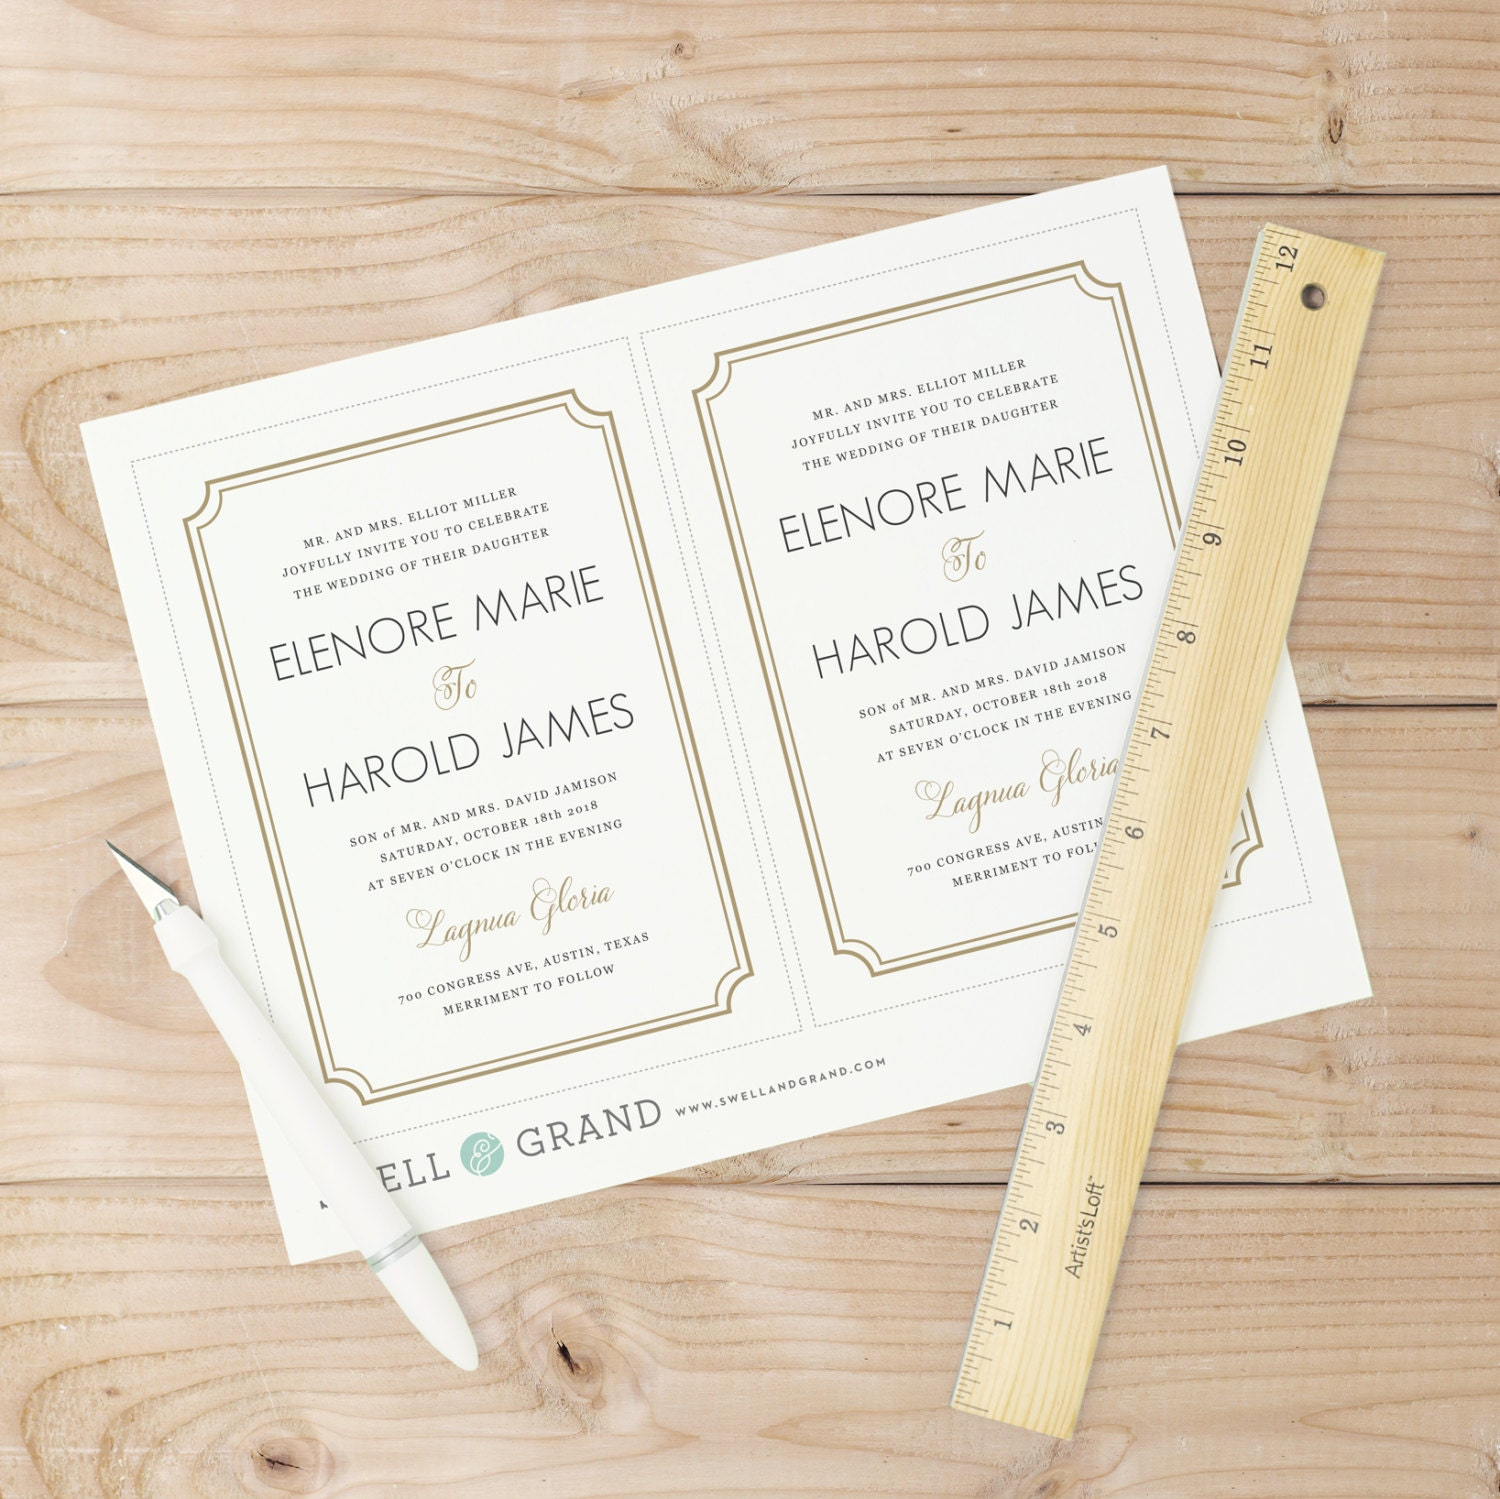 Download print wedding invitation template classic deco word gallery photo gallery photo gallery photo gallery photo gallery photo stopboris Images